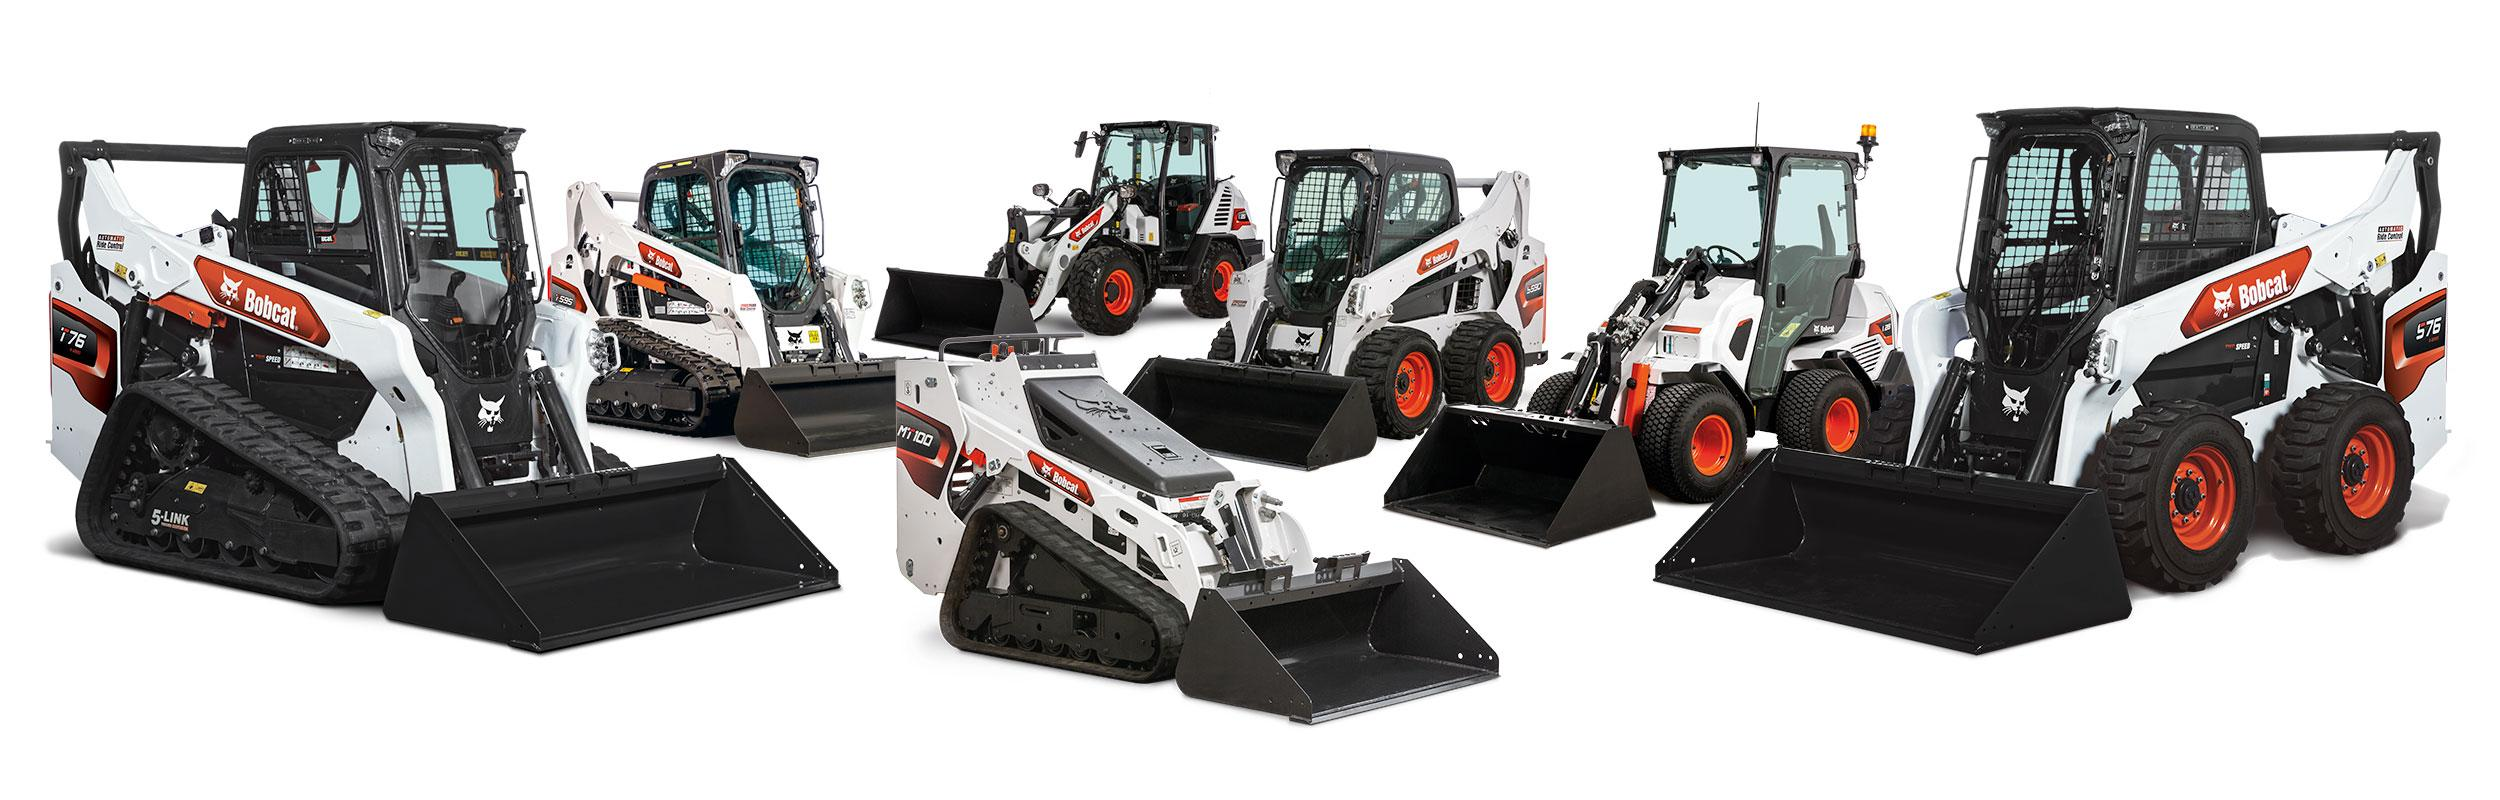 Studio Image Of The Bobcat Compact Track, Mini, Skid-Steer, Compact Wheel Loaders and Articulated Loaders